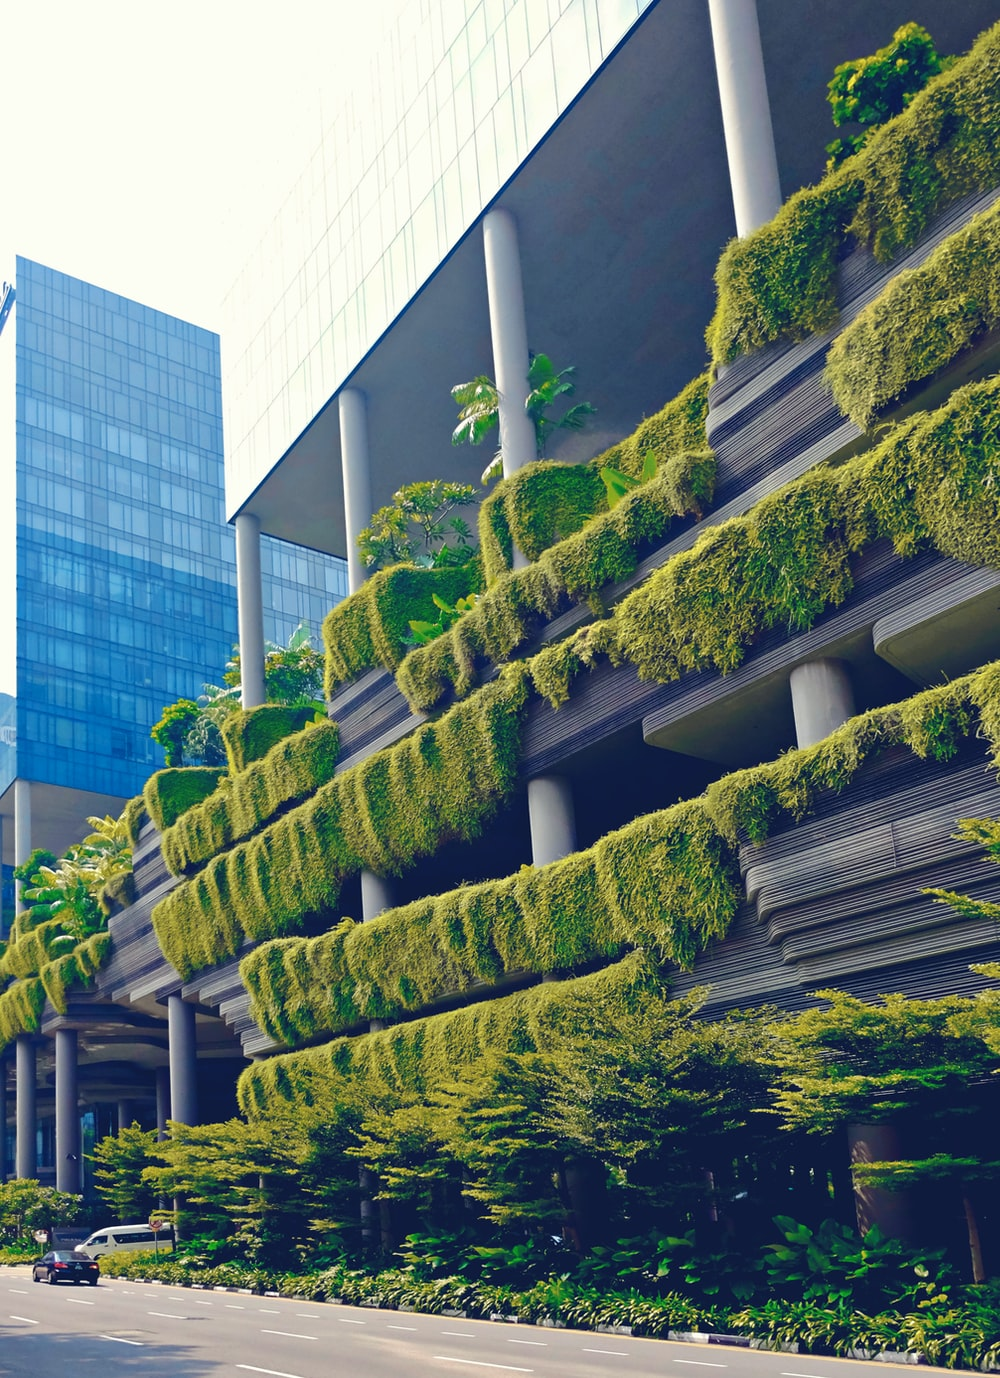 green trees on white concrete building during daytime